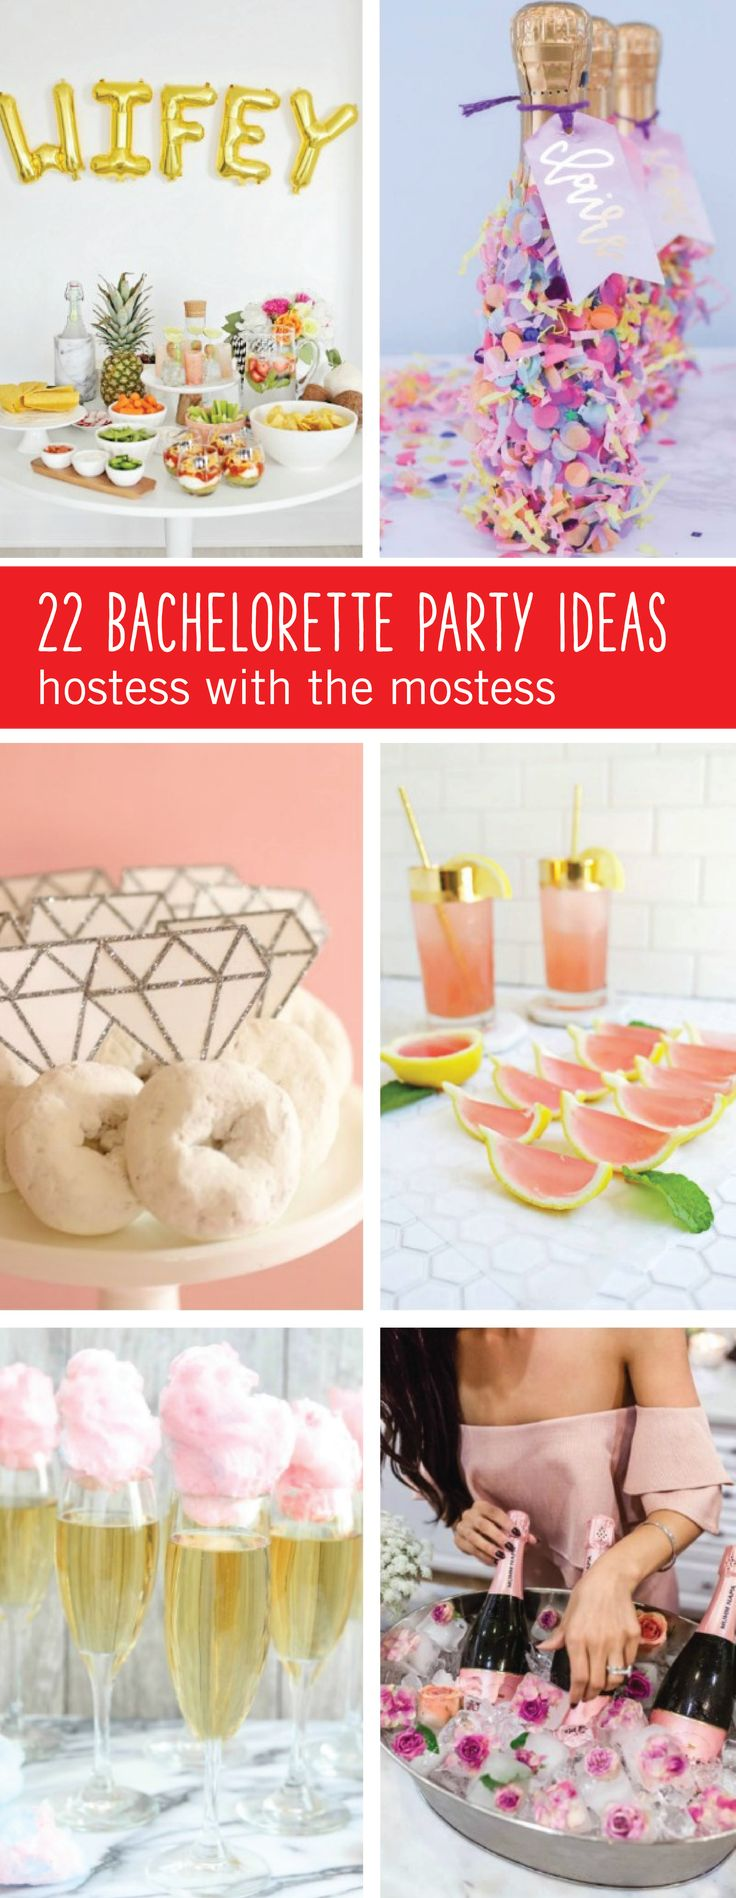 Getting the girls together to celebrate engagements is so much more fun with the help of these 22 Bachelorette Party Ideas! From creative, ring-themed treats to bubbly cocktails and fun activities, this guide has thought of it all.